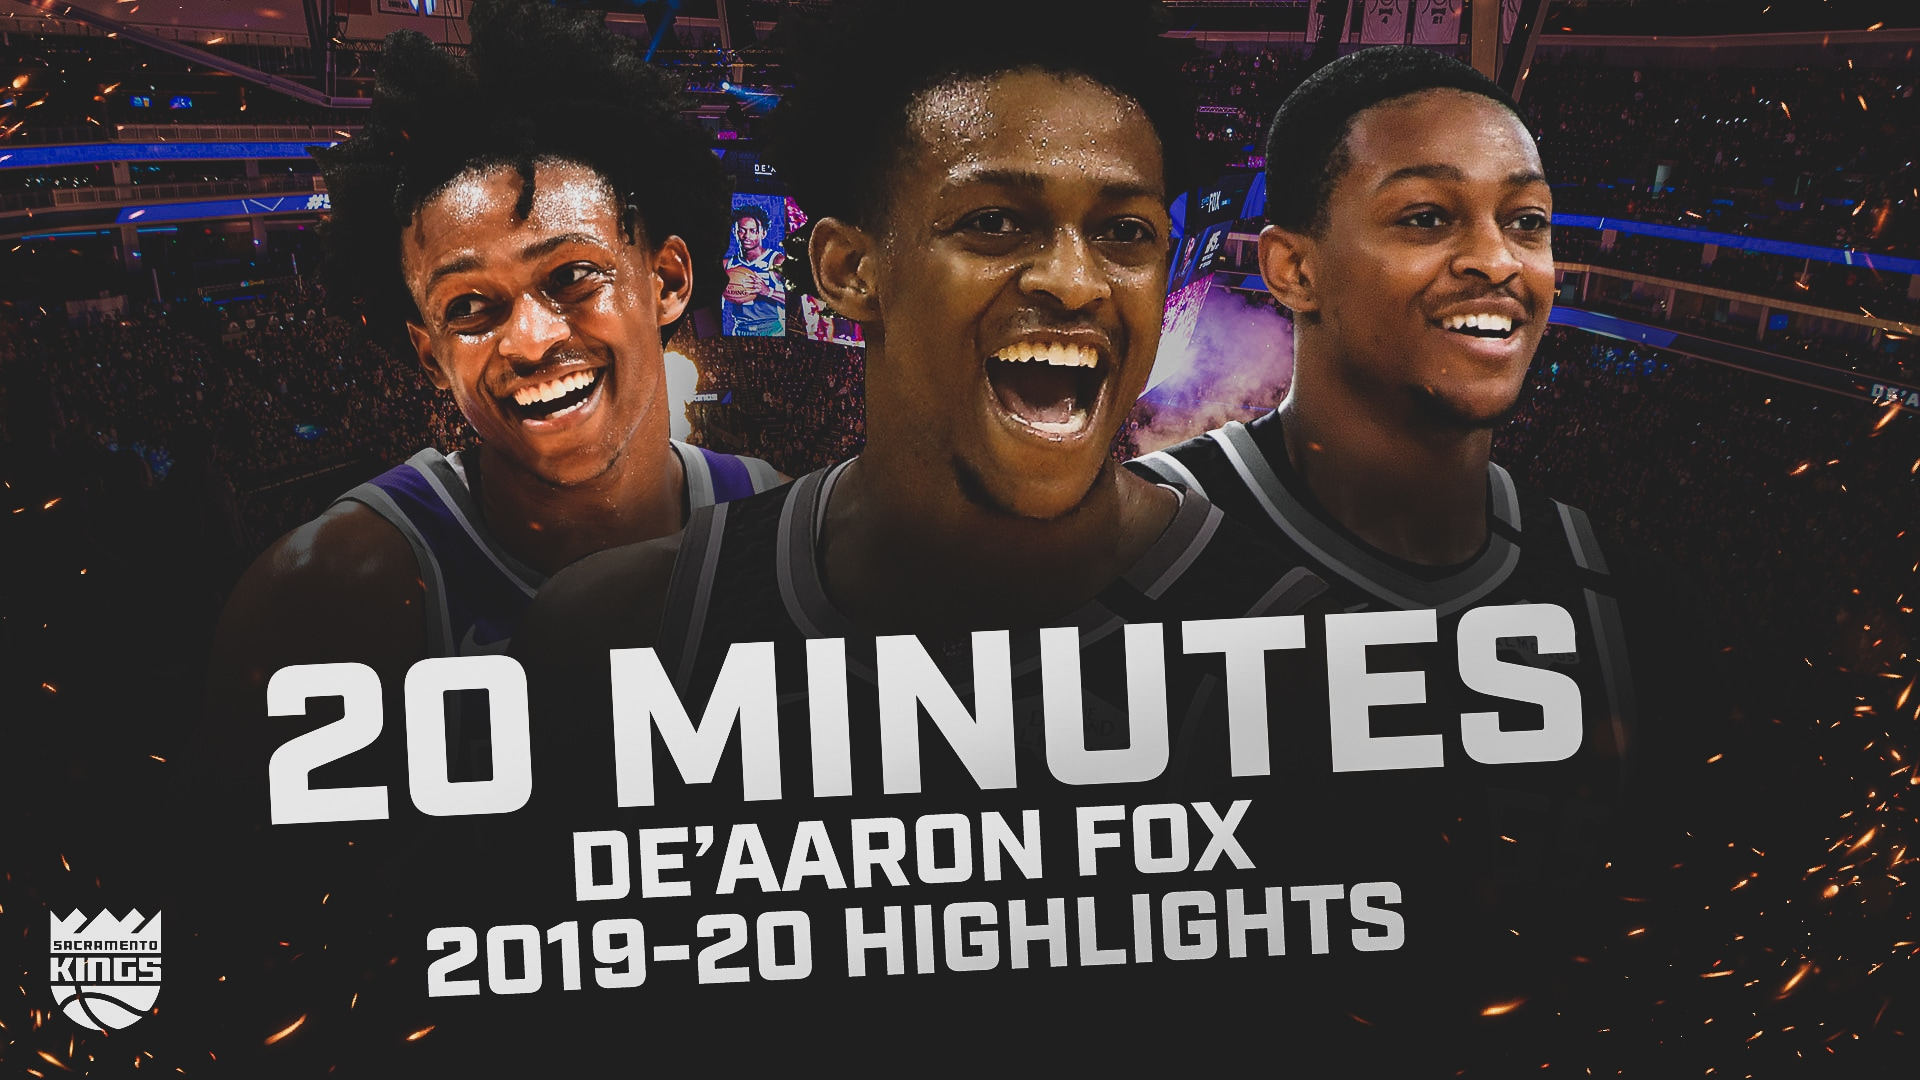 2019-20 De'Aaron Fox Highlights